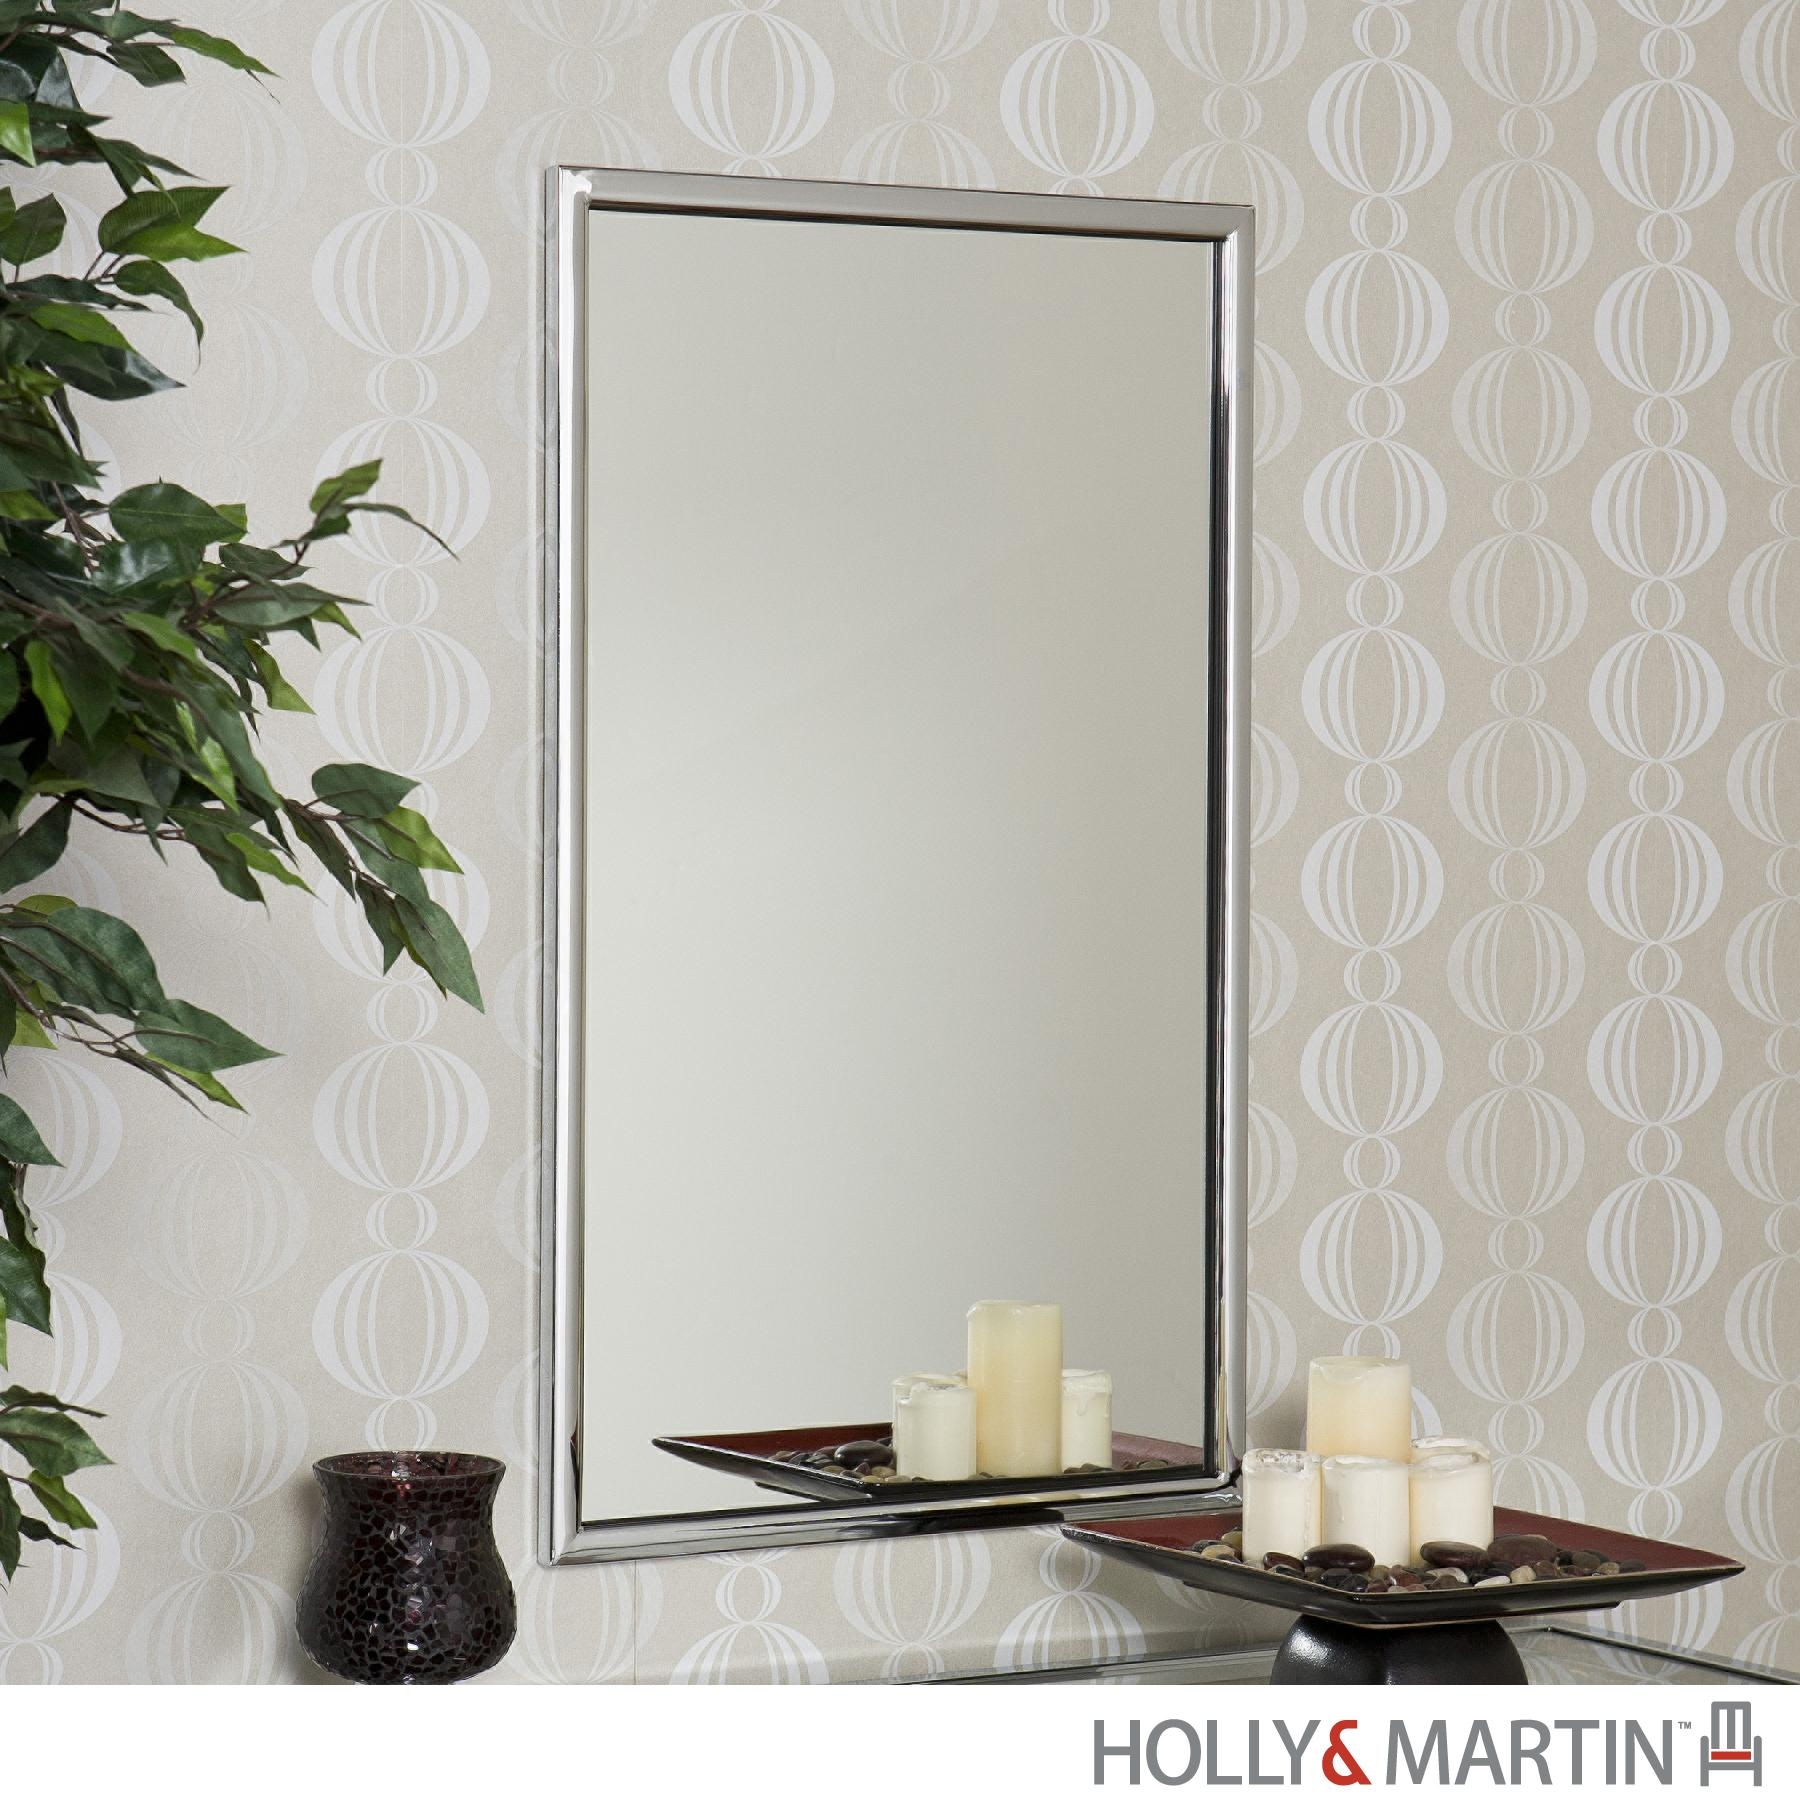 Holly & Martin Roxburgh Chrome Wall Mirror 93 208 019 4 07 In Chrome Wall Mirrors (Image 6 of 20)